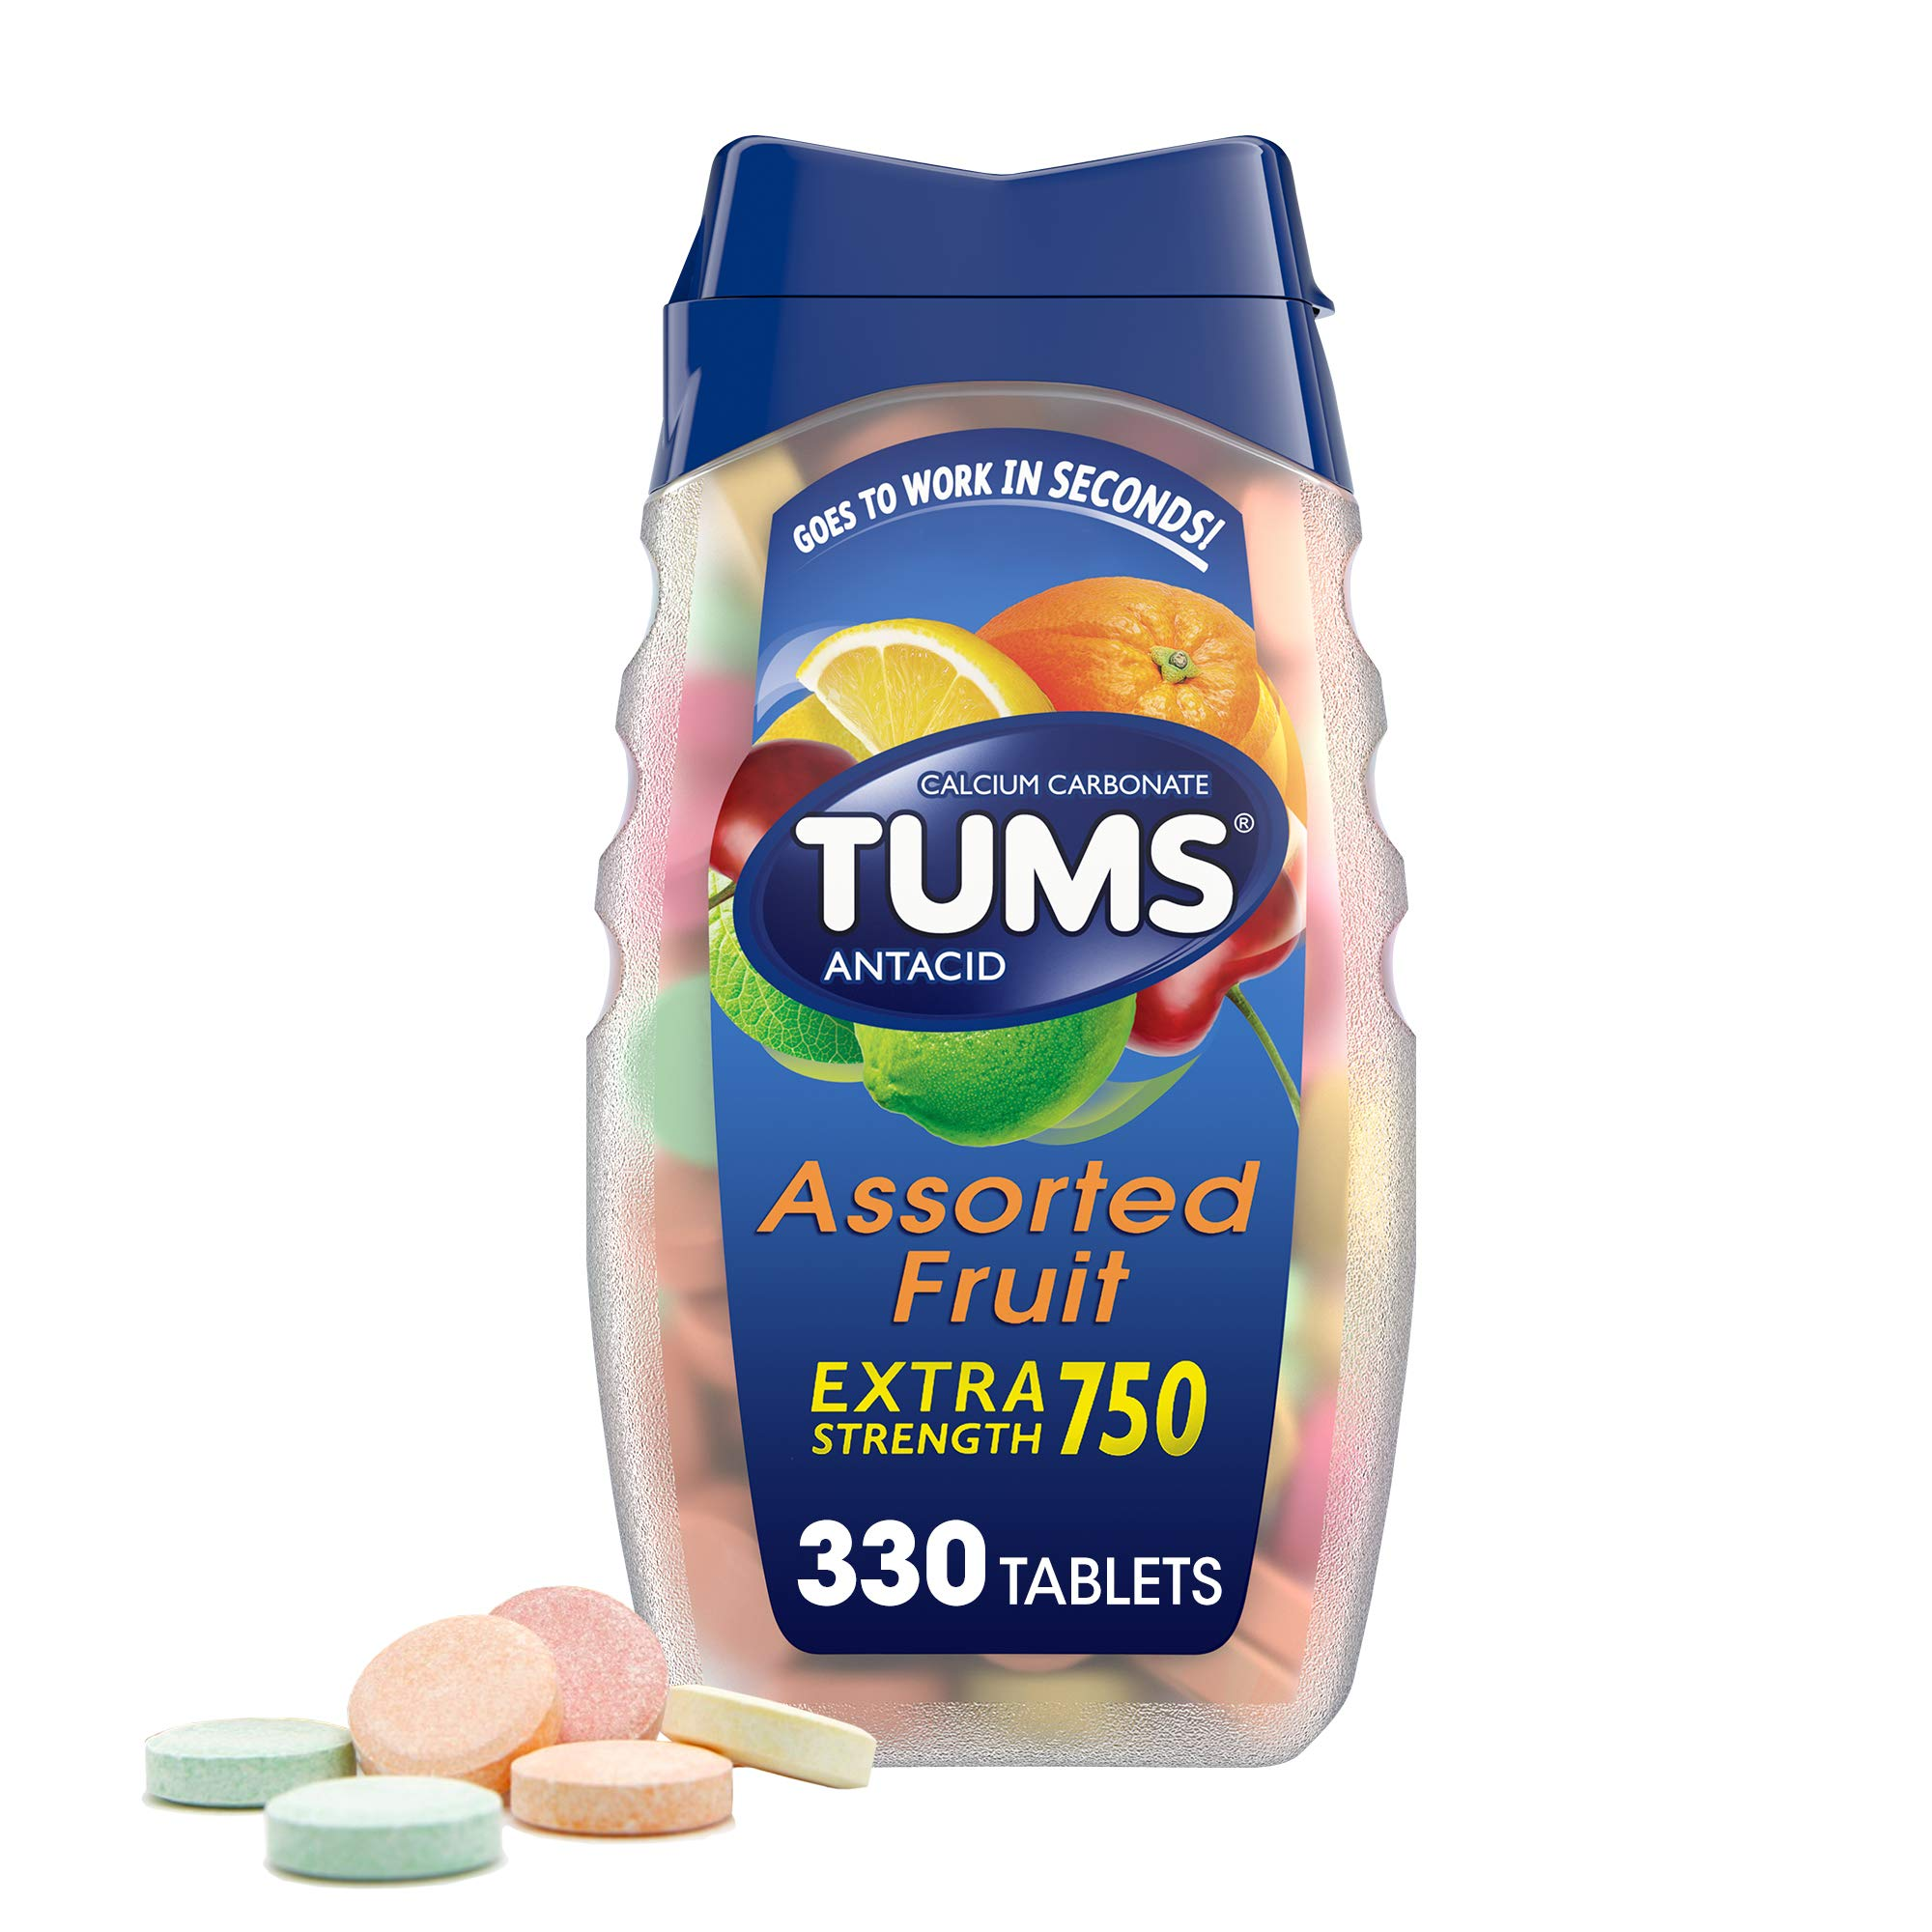 TUMS Extra Strength Antacid Tablets for Chewable Heartburn Relief and Acid Indigestion Relief, Assorted Fruit Flavors - 330 Count